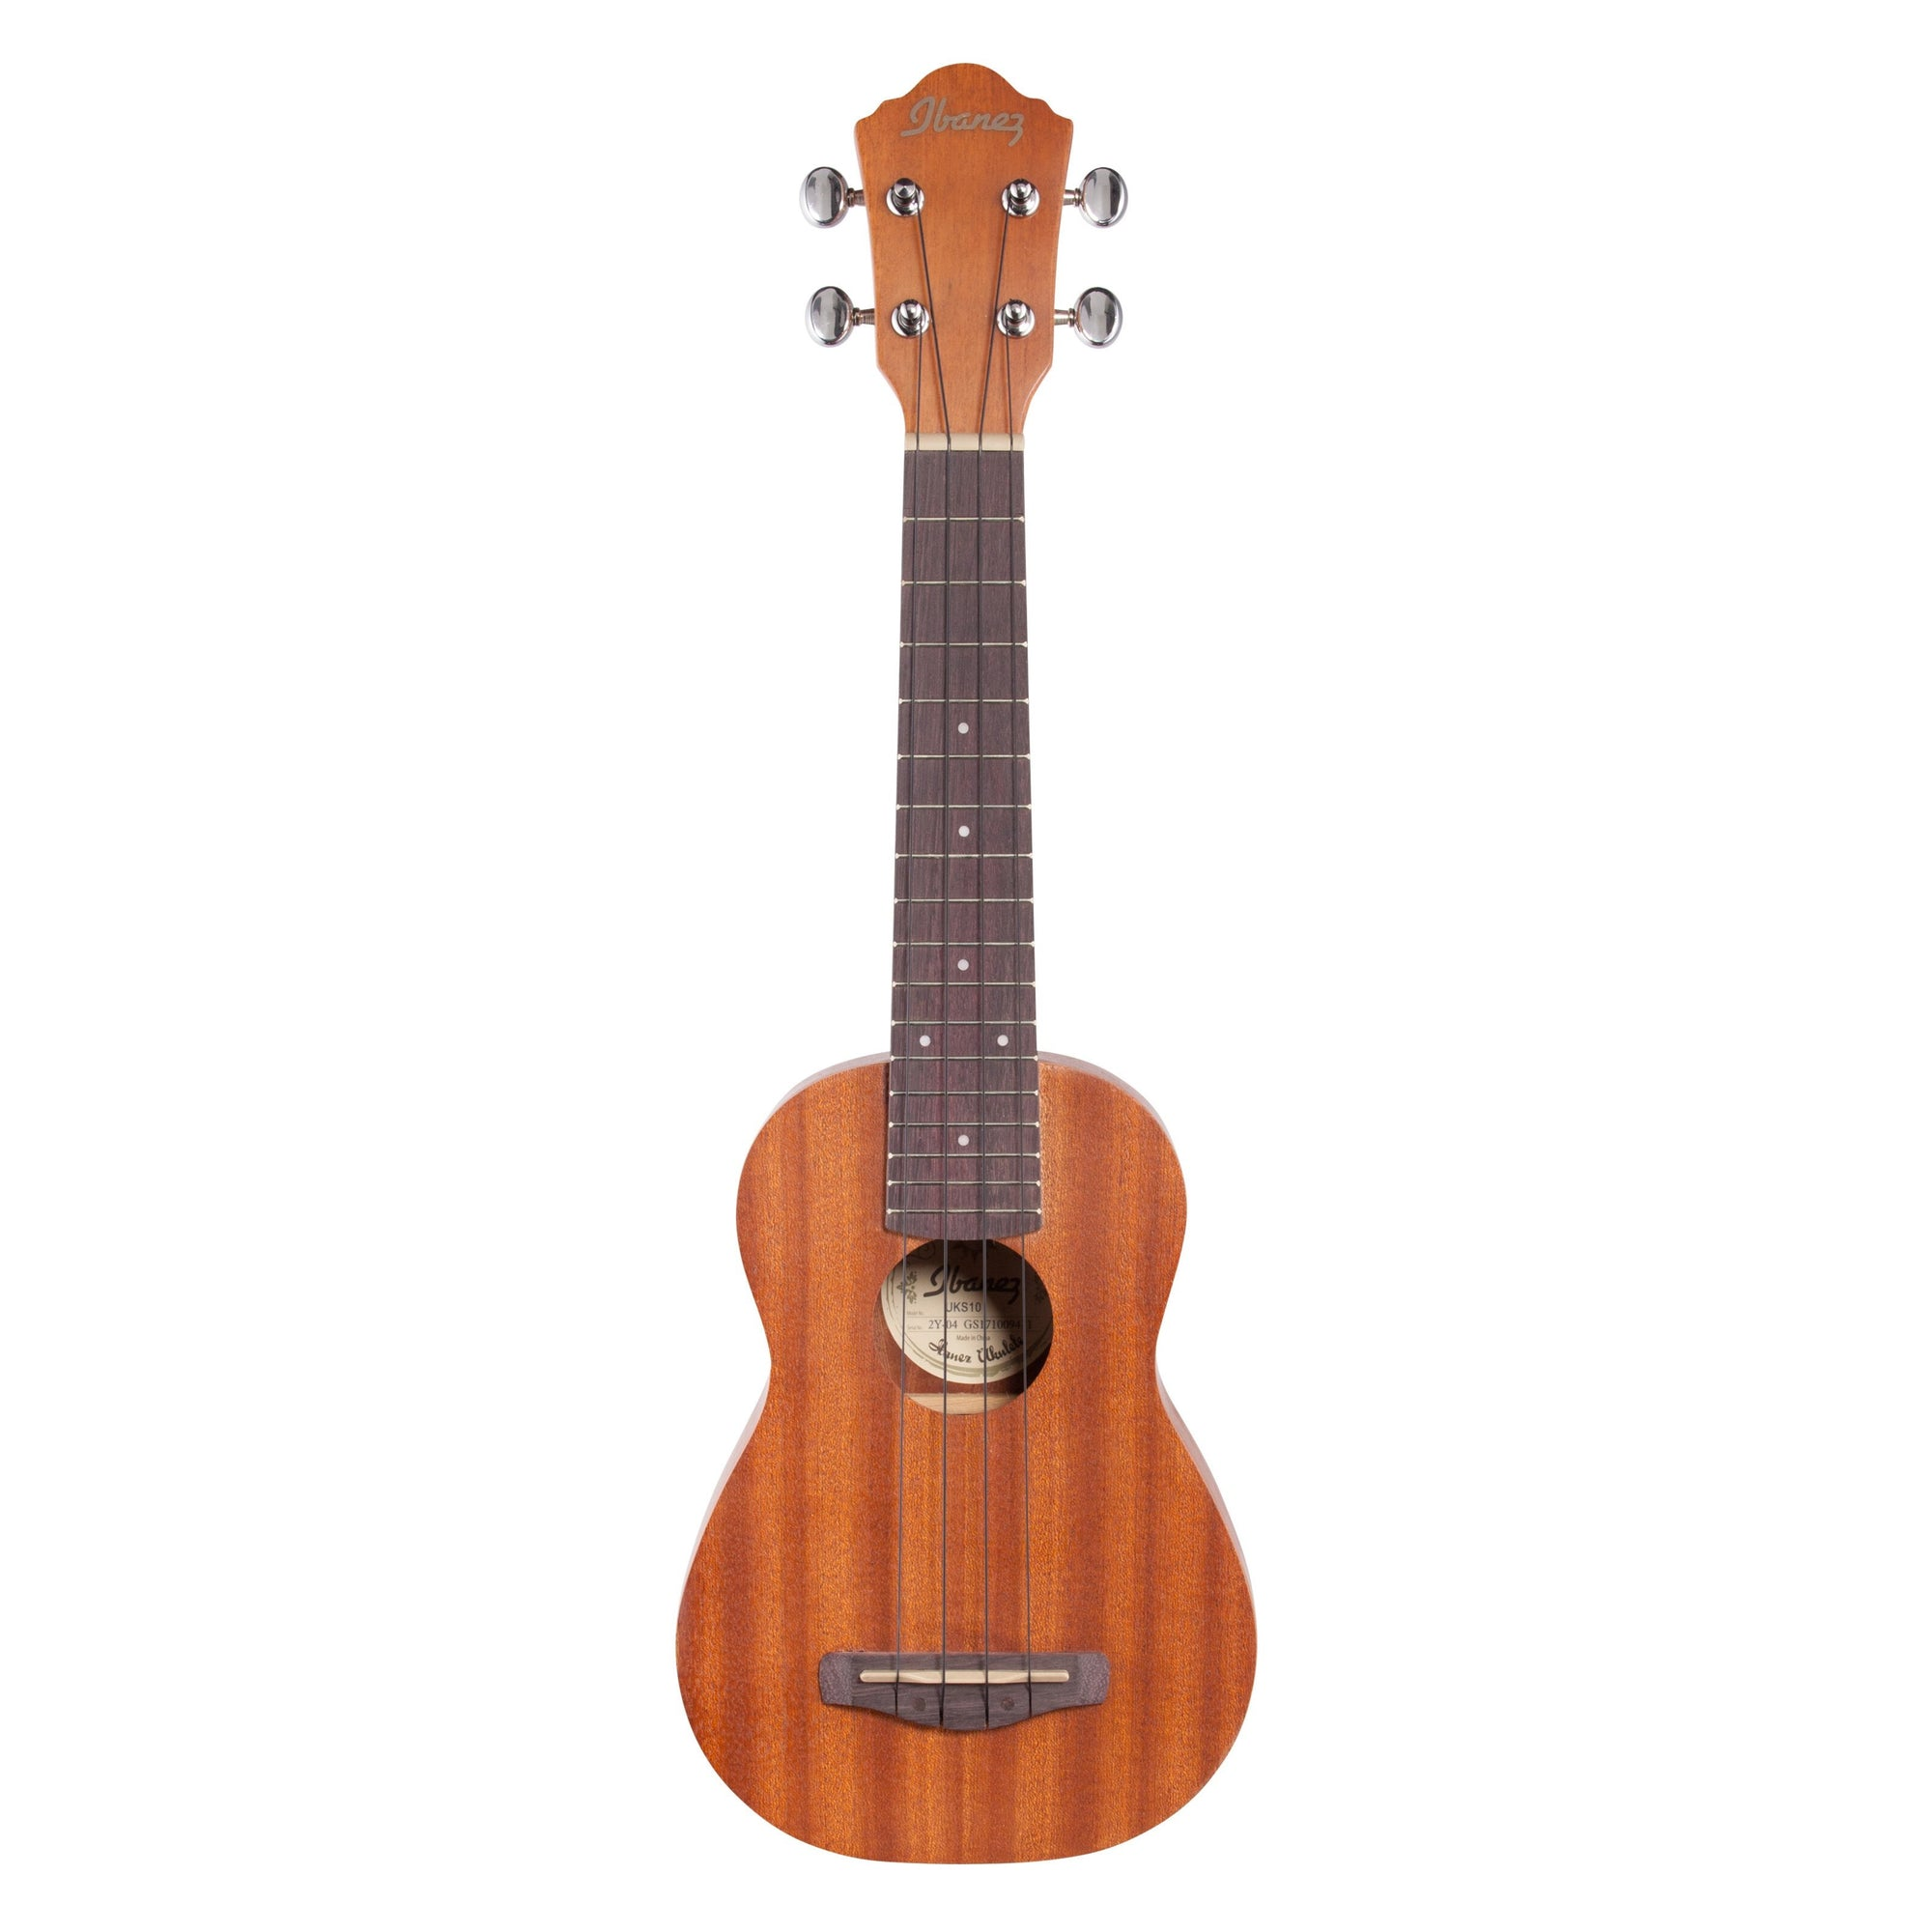 Ibanez UKS10 Soprano Ukulele (with Gig Bag)